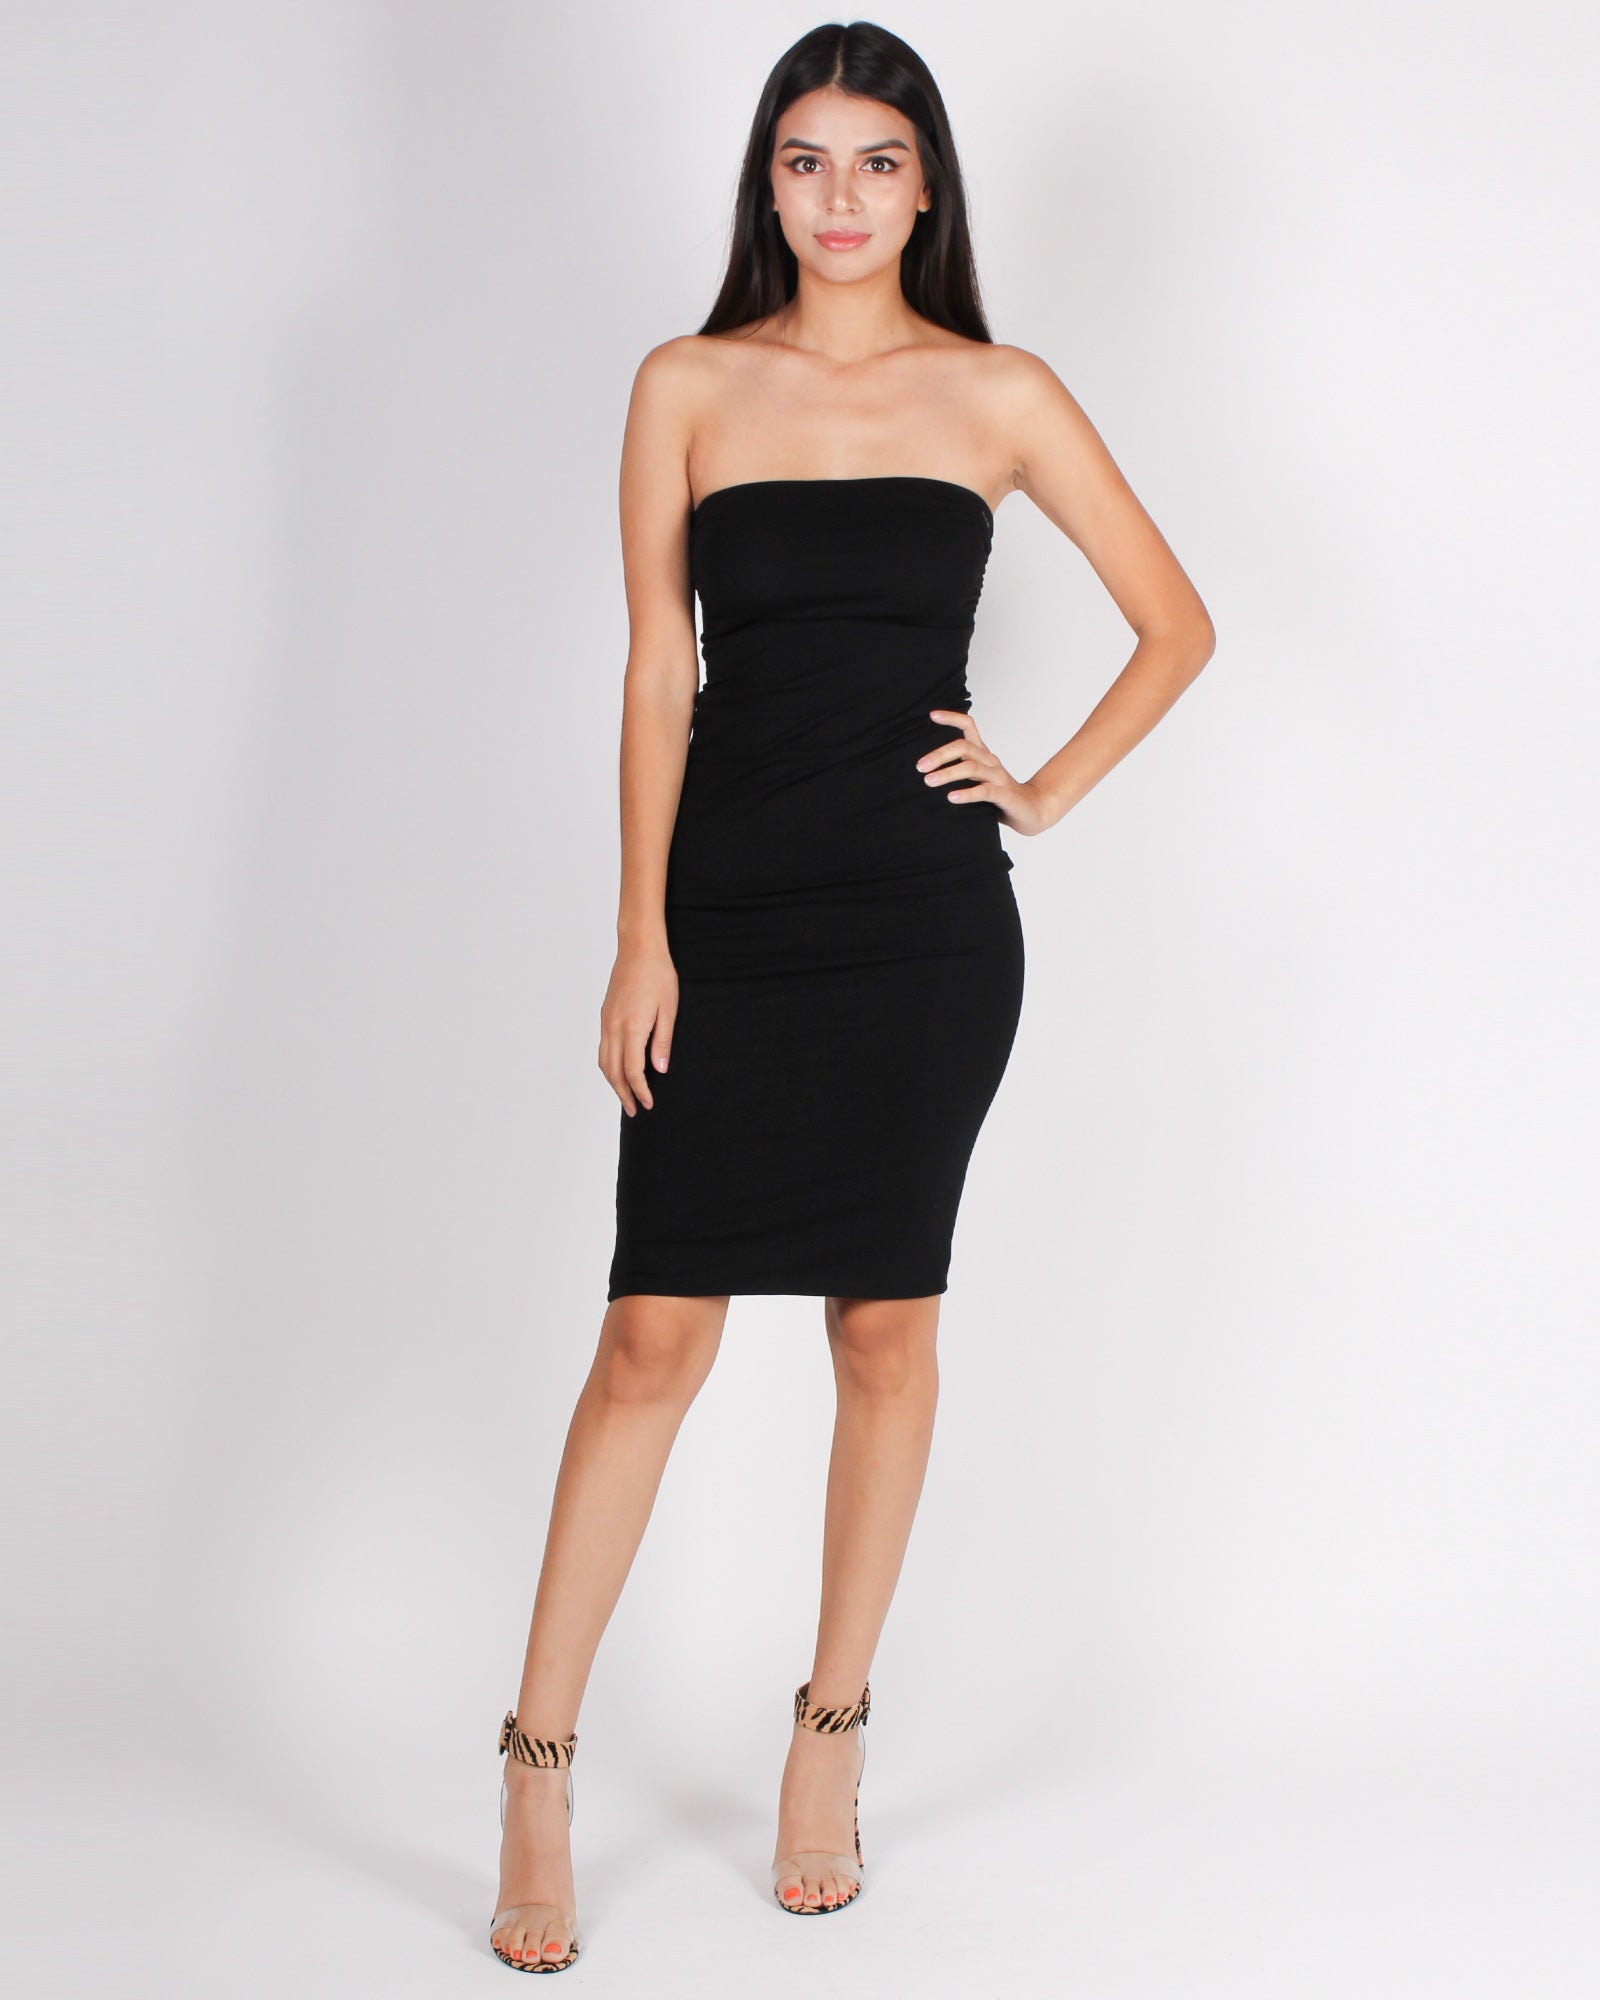 Fashion Q Shop Q The Chameleon Dress (Black) JD16295